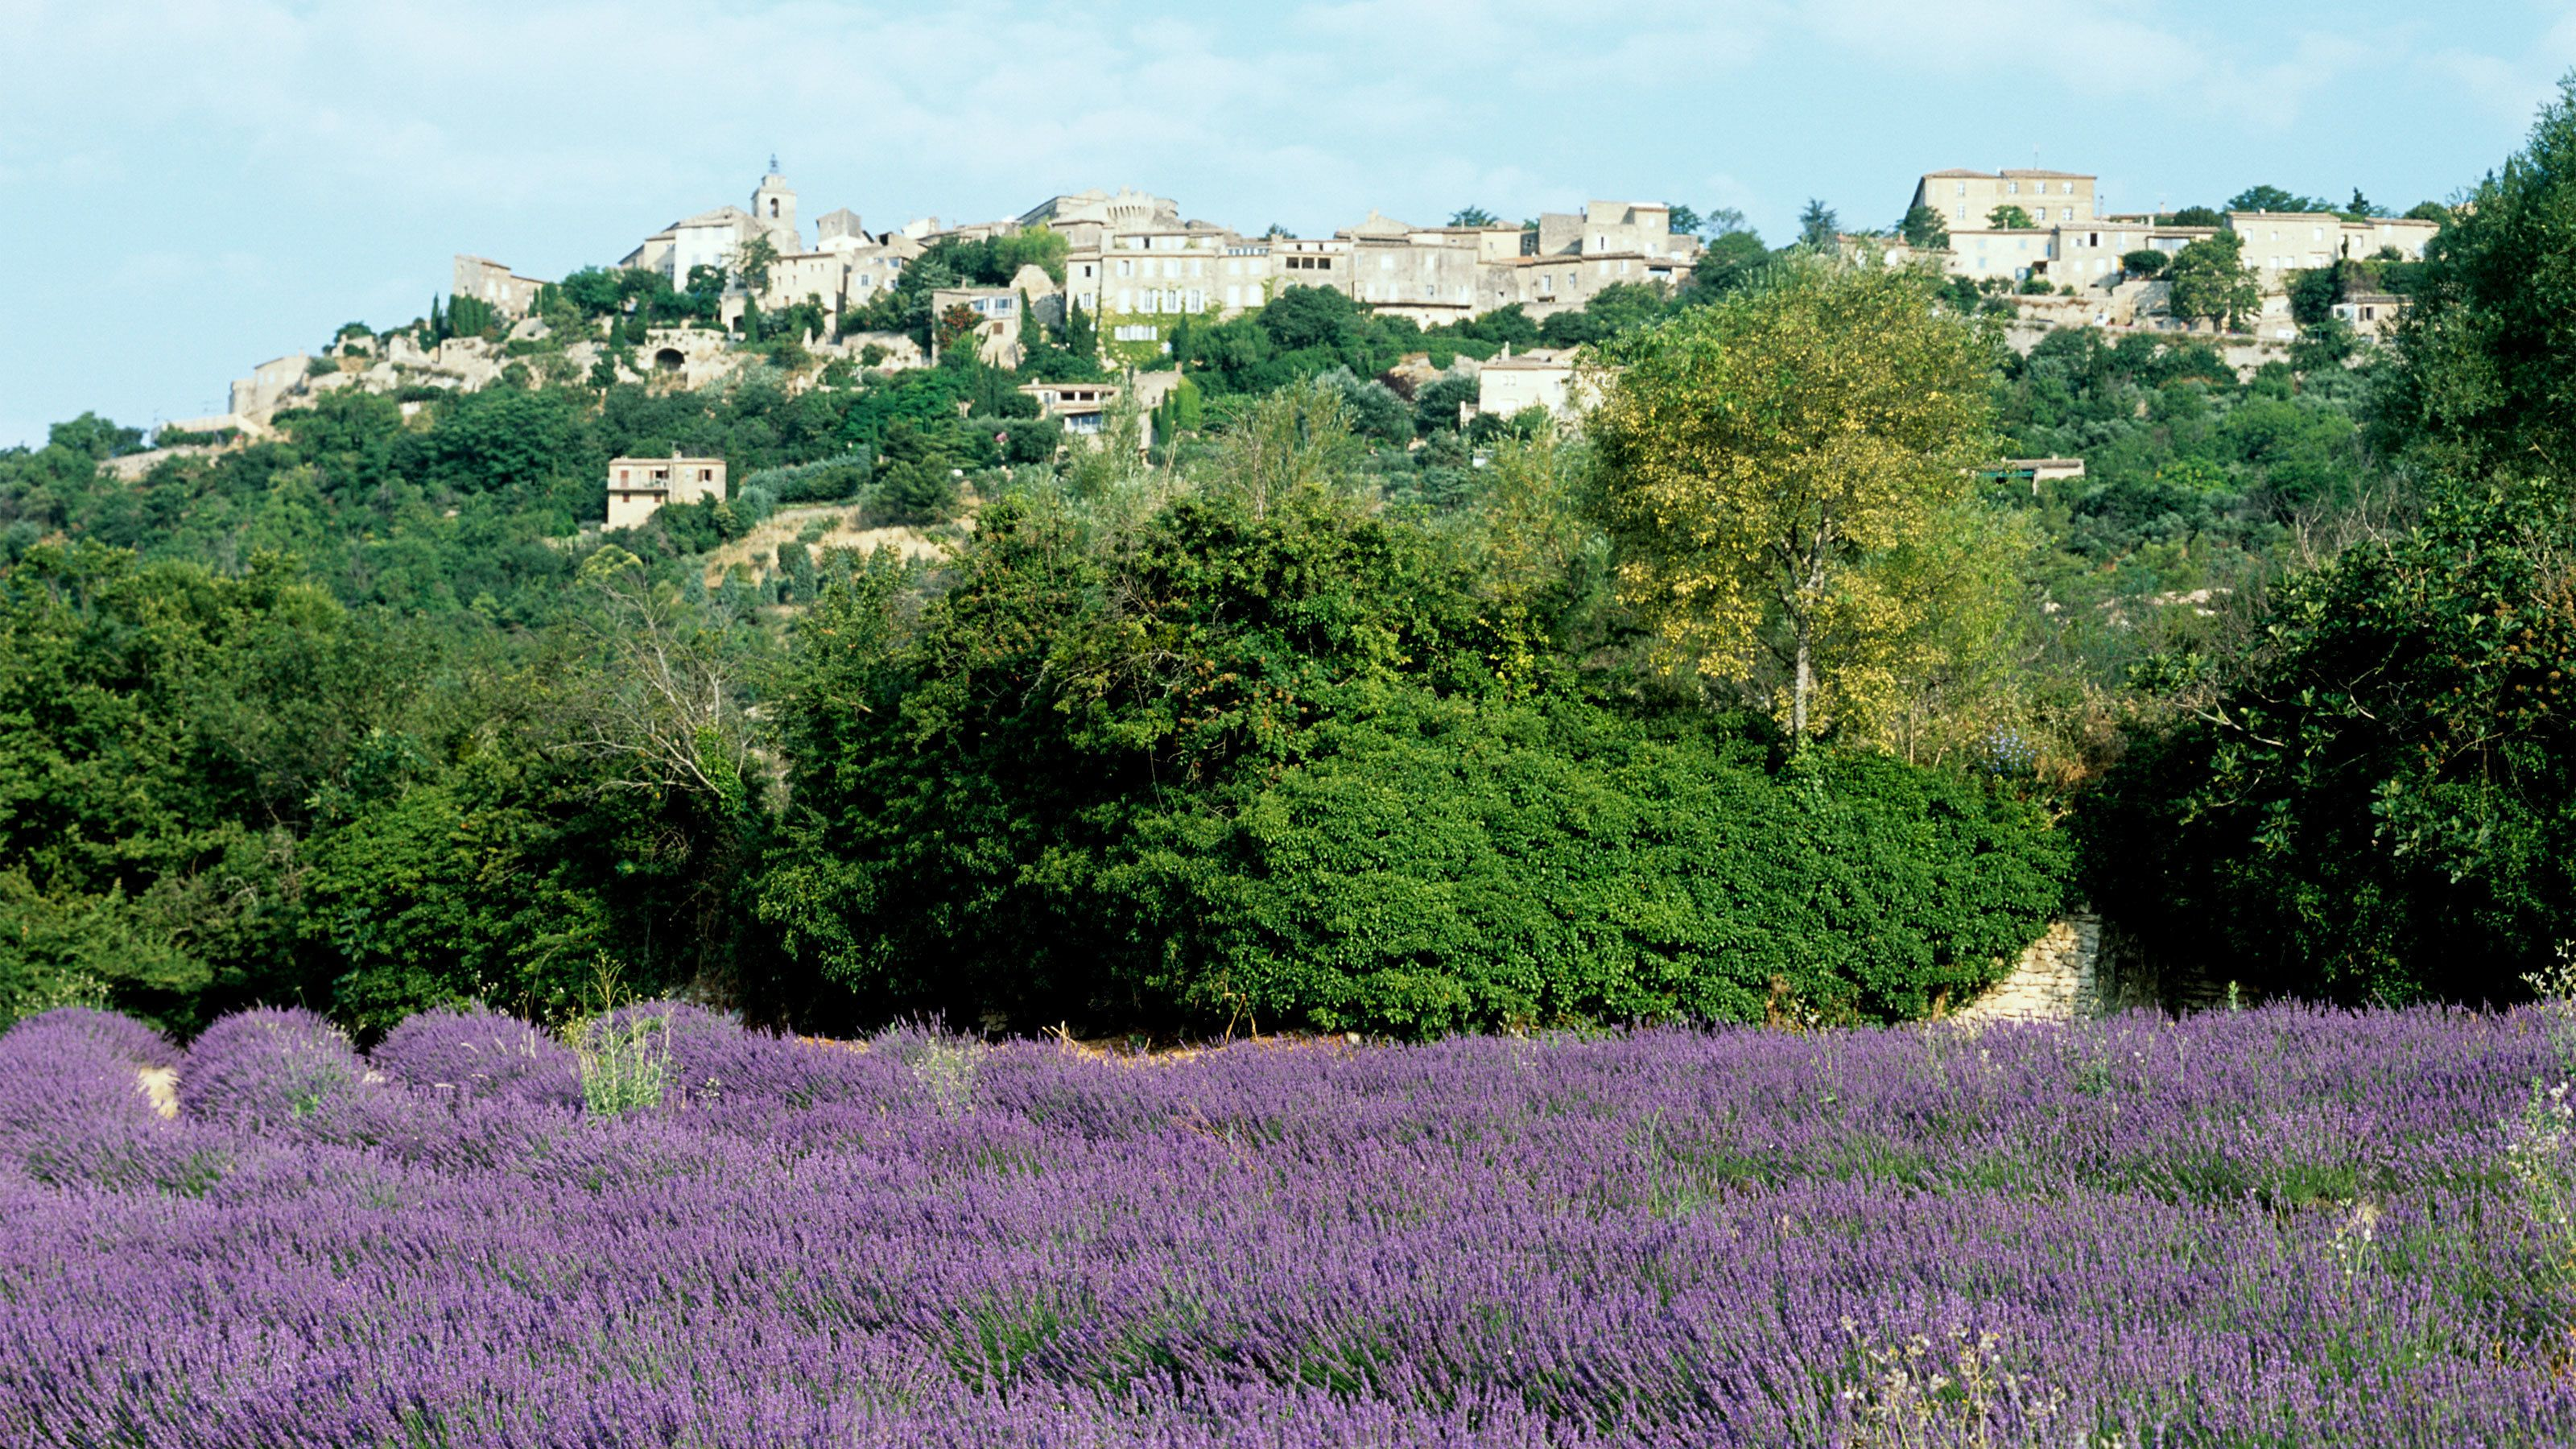 Perched Villages of the Luberon overlooking a stunning lavender field